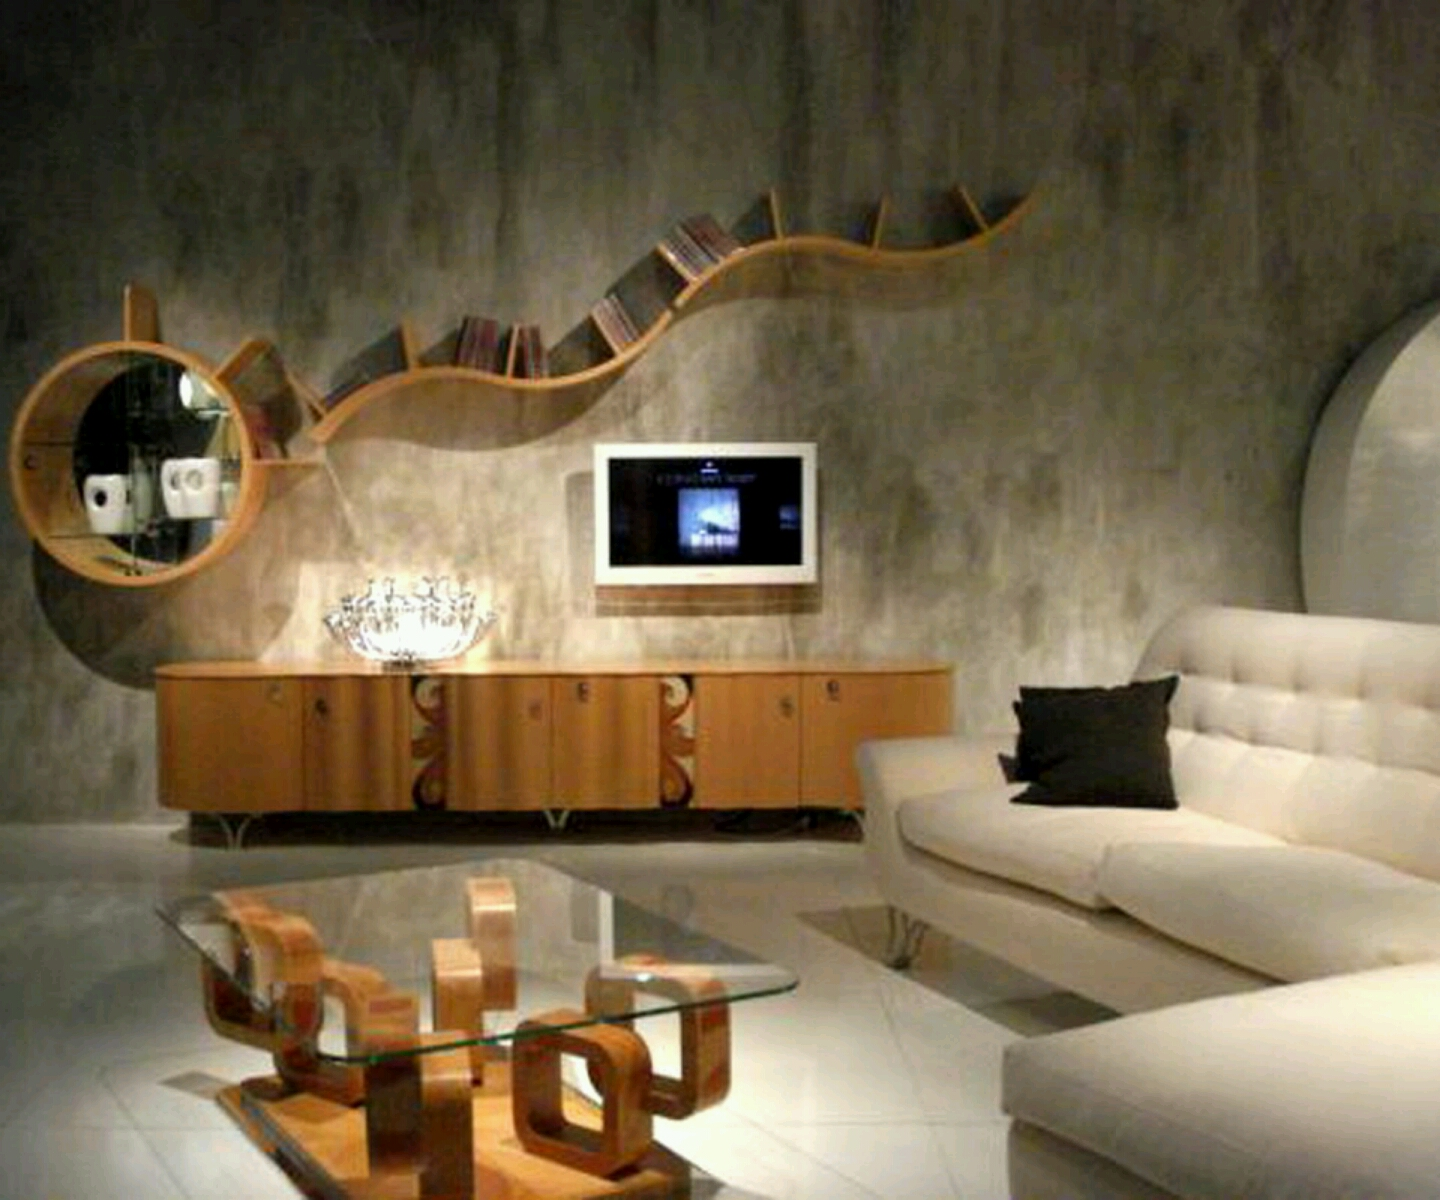 New home designs latest.: Modern living room designs ideas.